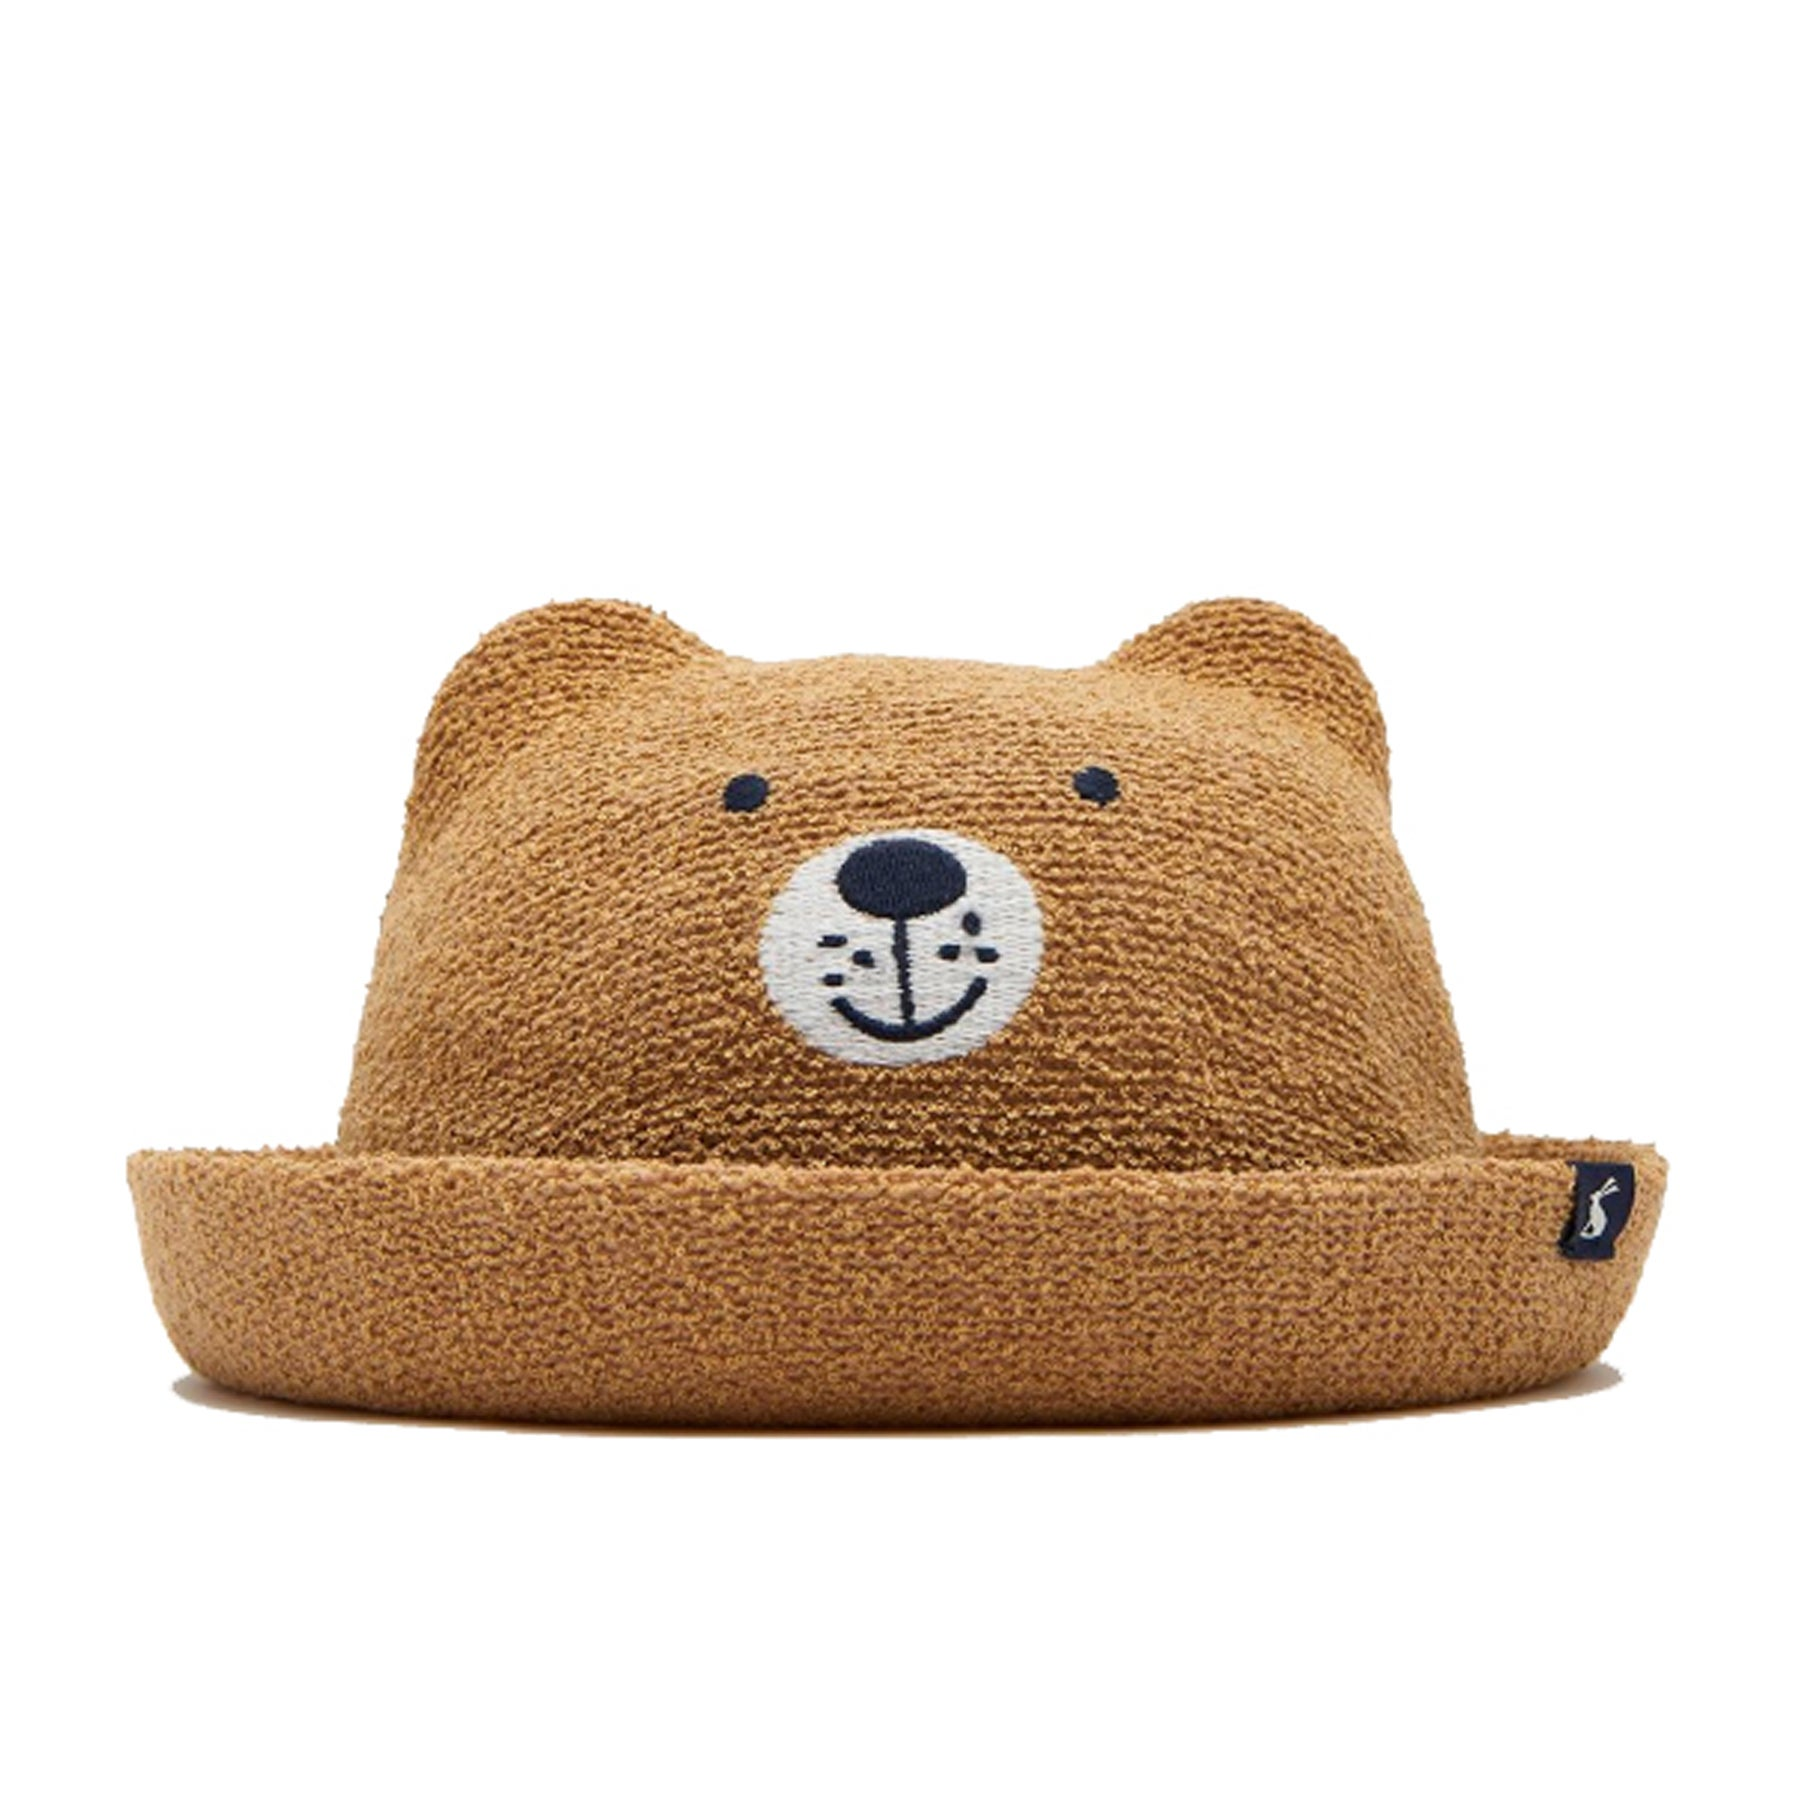 Joules Mikey Boys Hat - Brown Bear